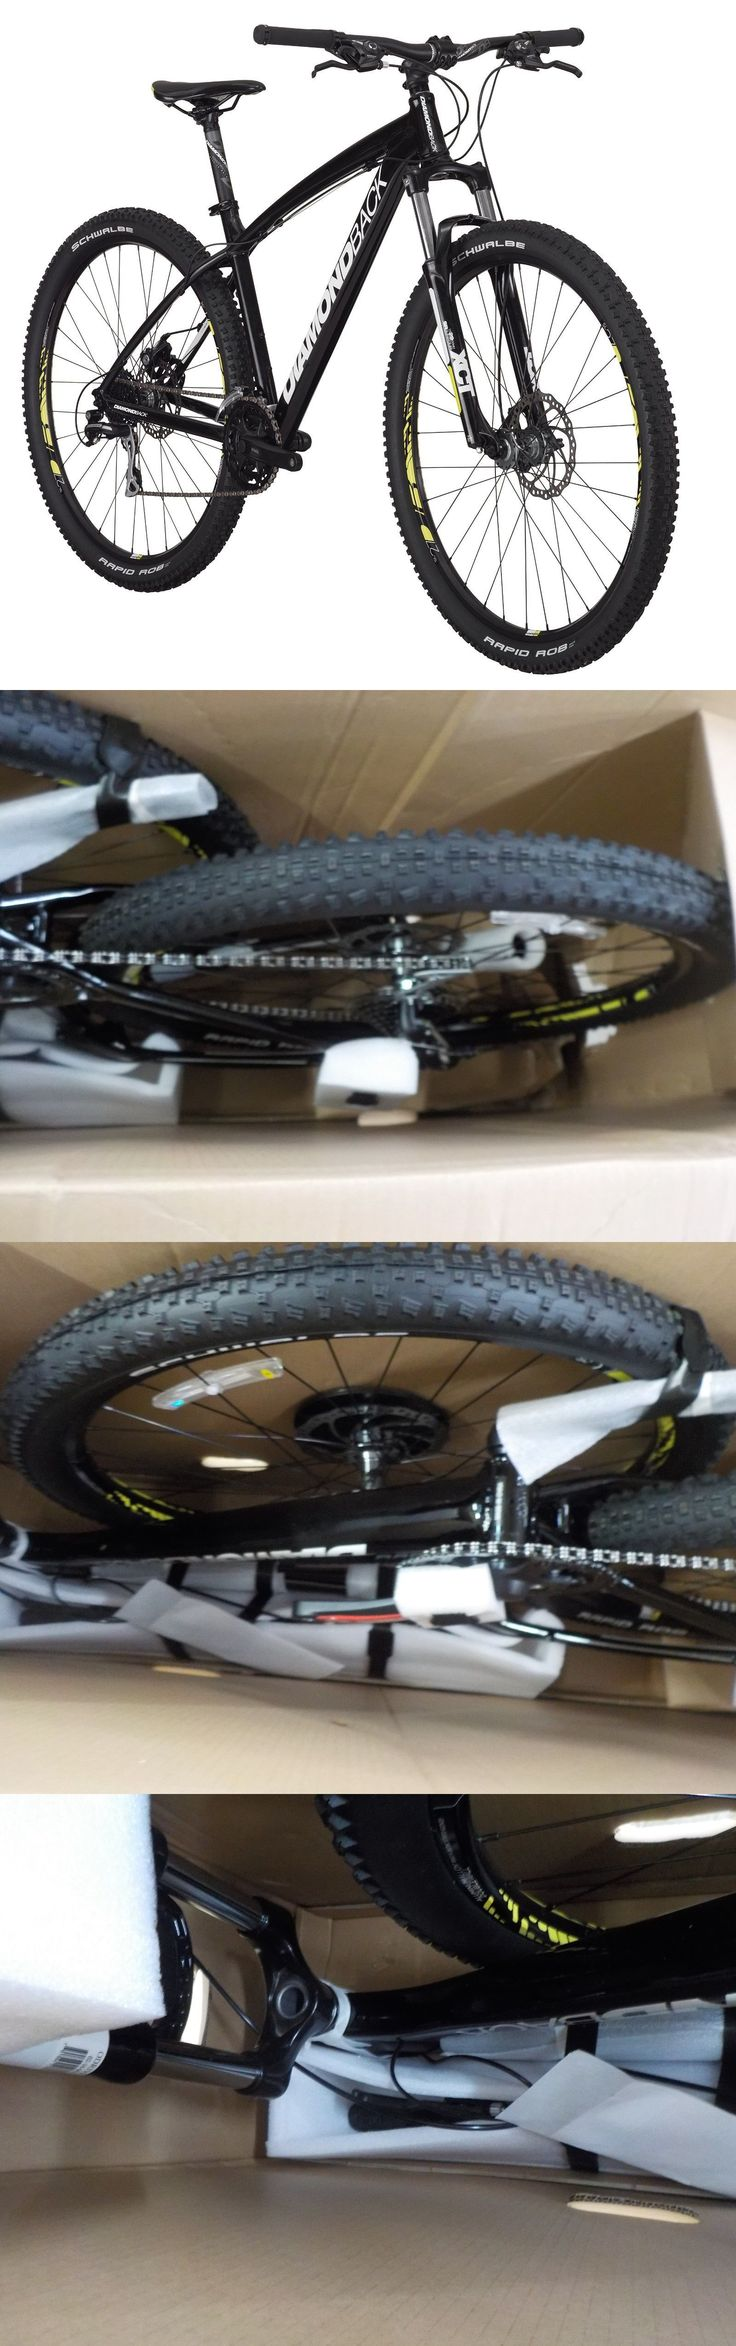 bicycles: Diamondback Overdrive 29 Hardtail Mountain Bike, Black (27.5-Inches) BUY IT NOW ONLY: $520.0